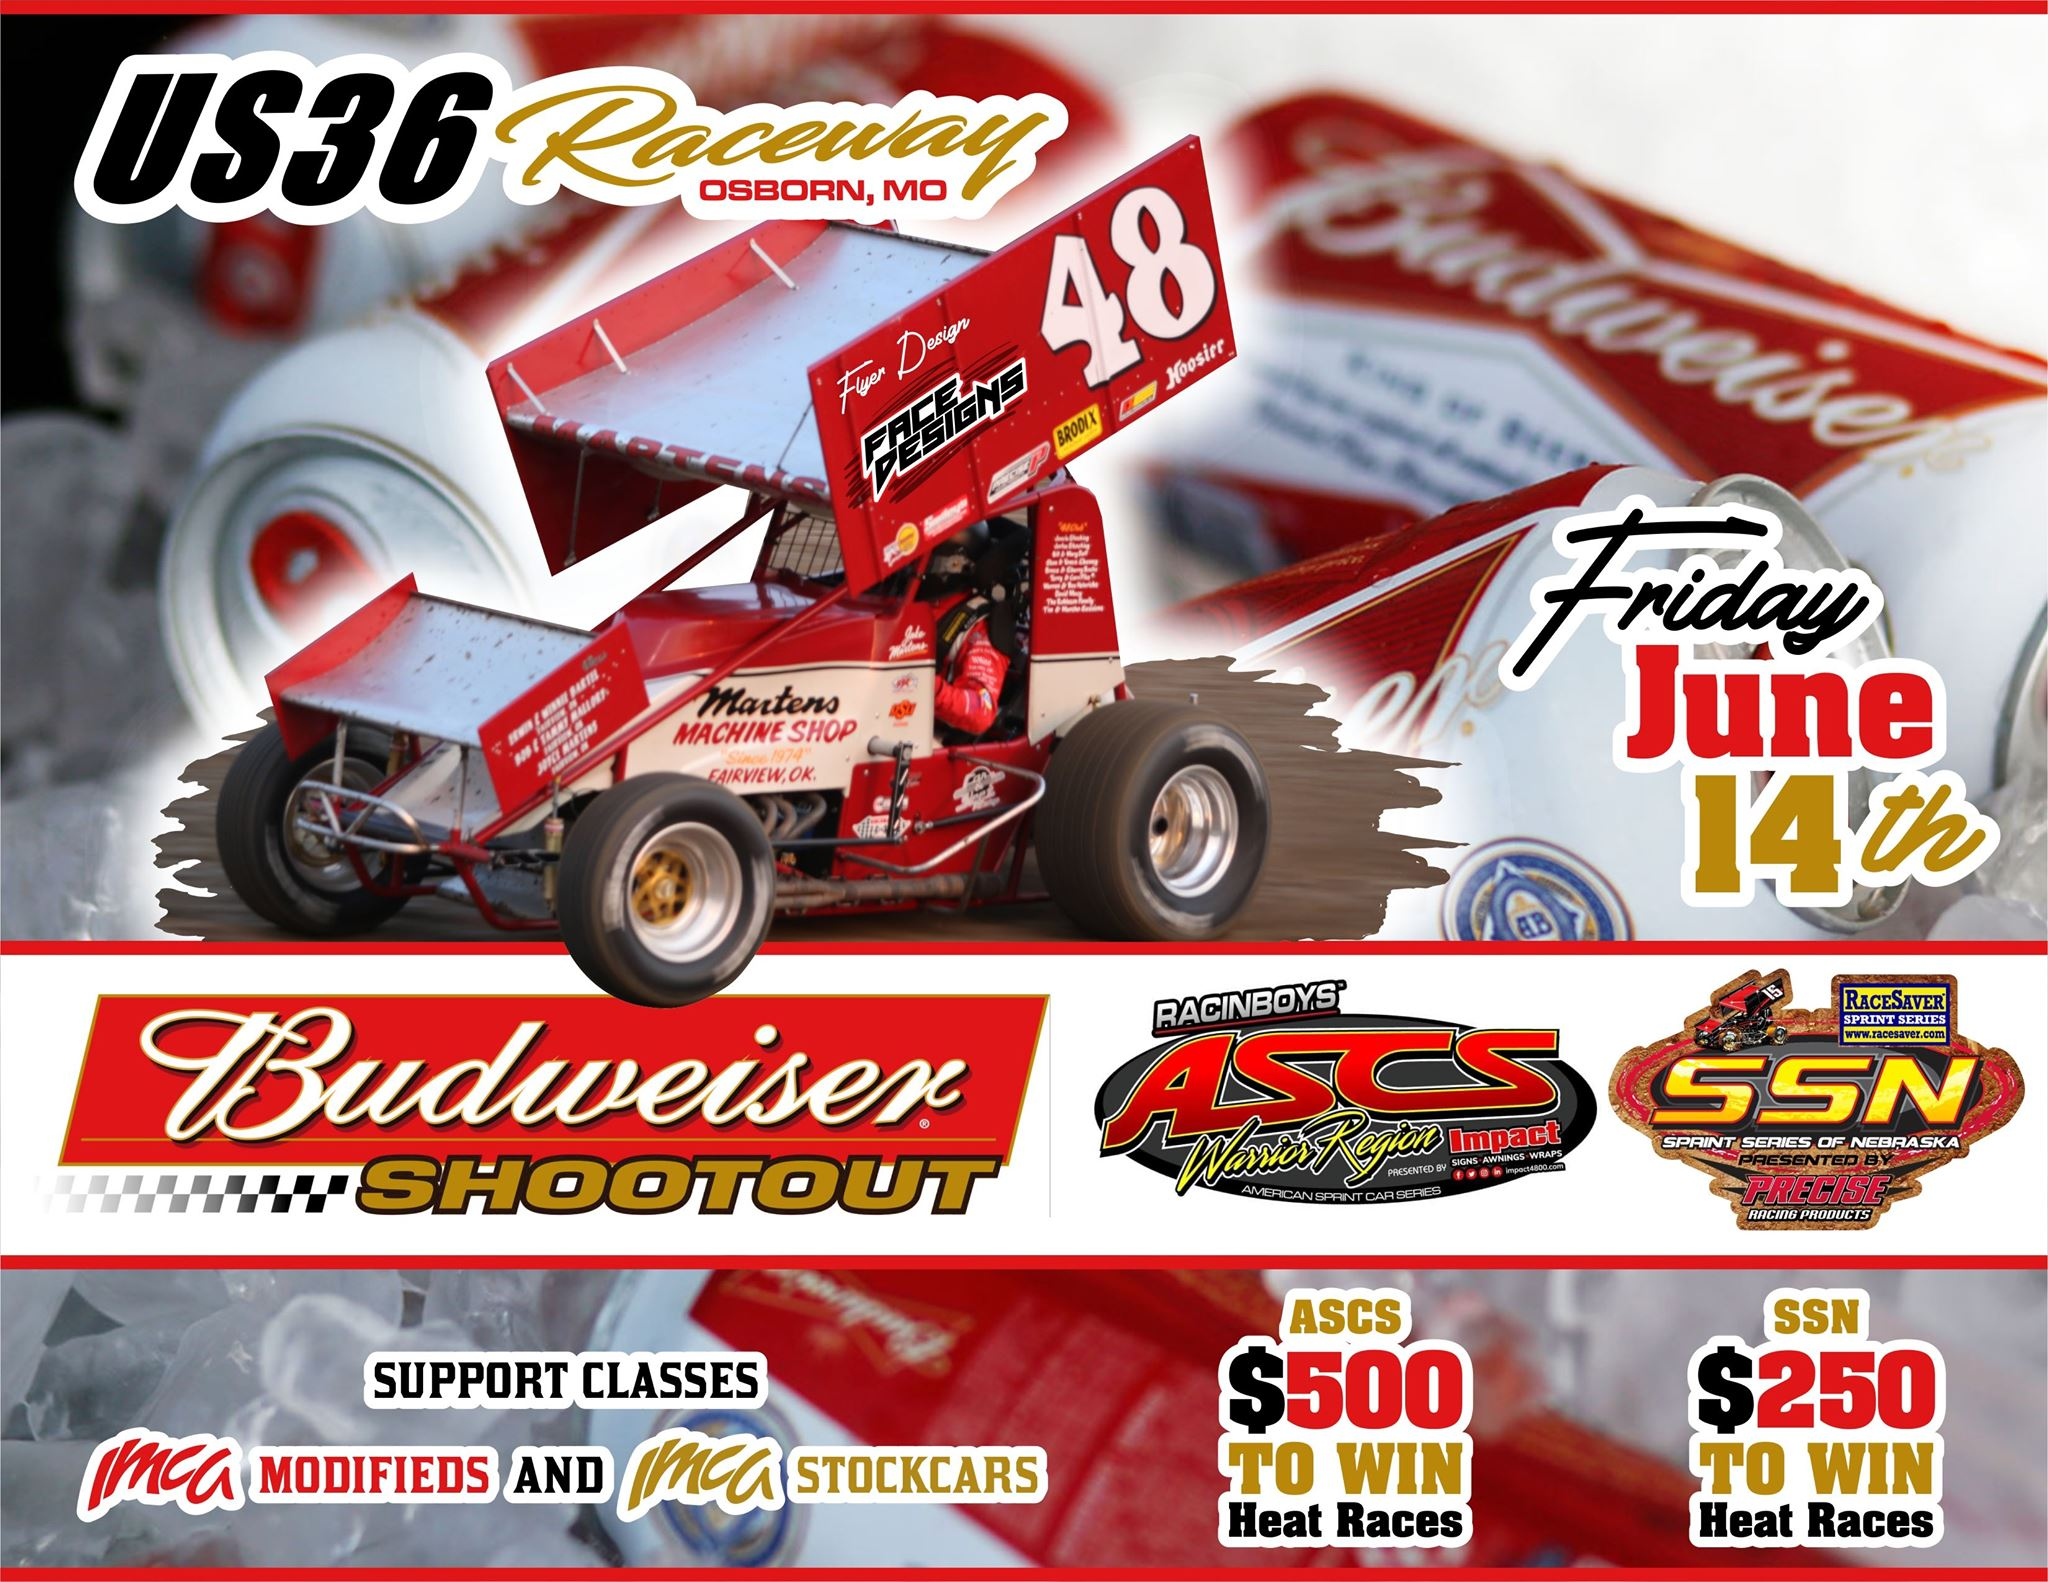 Sprint Series Of Nebraska at US 36 June 14th